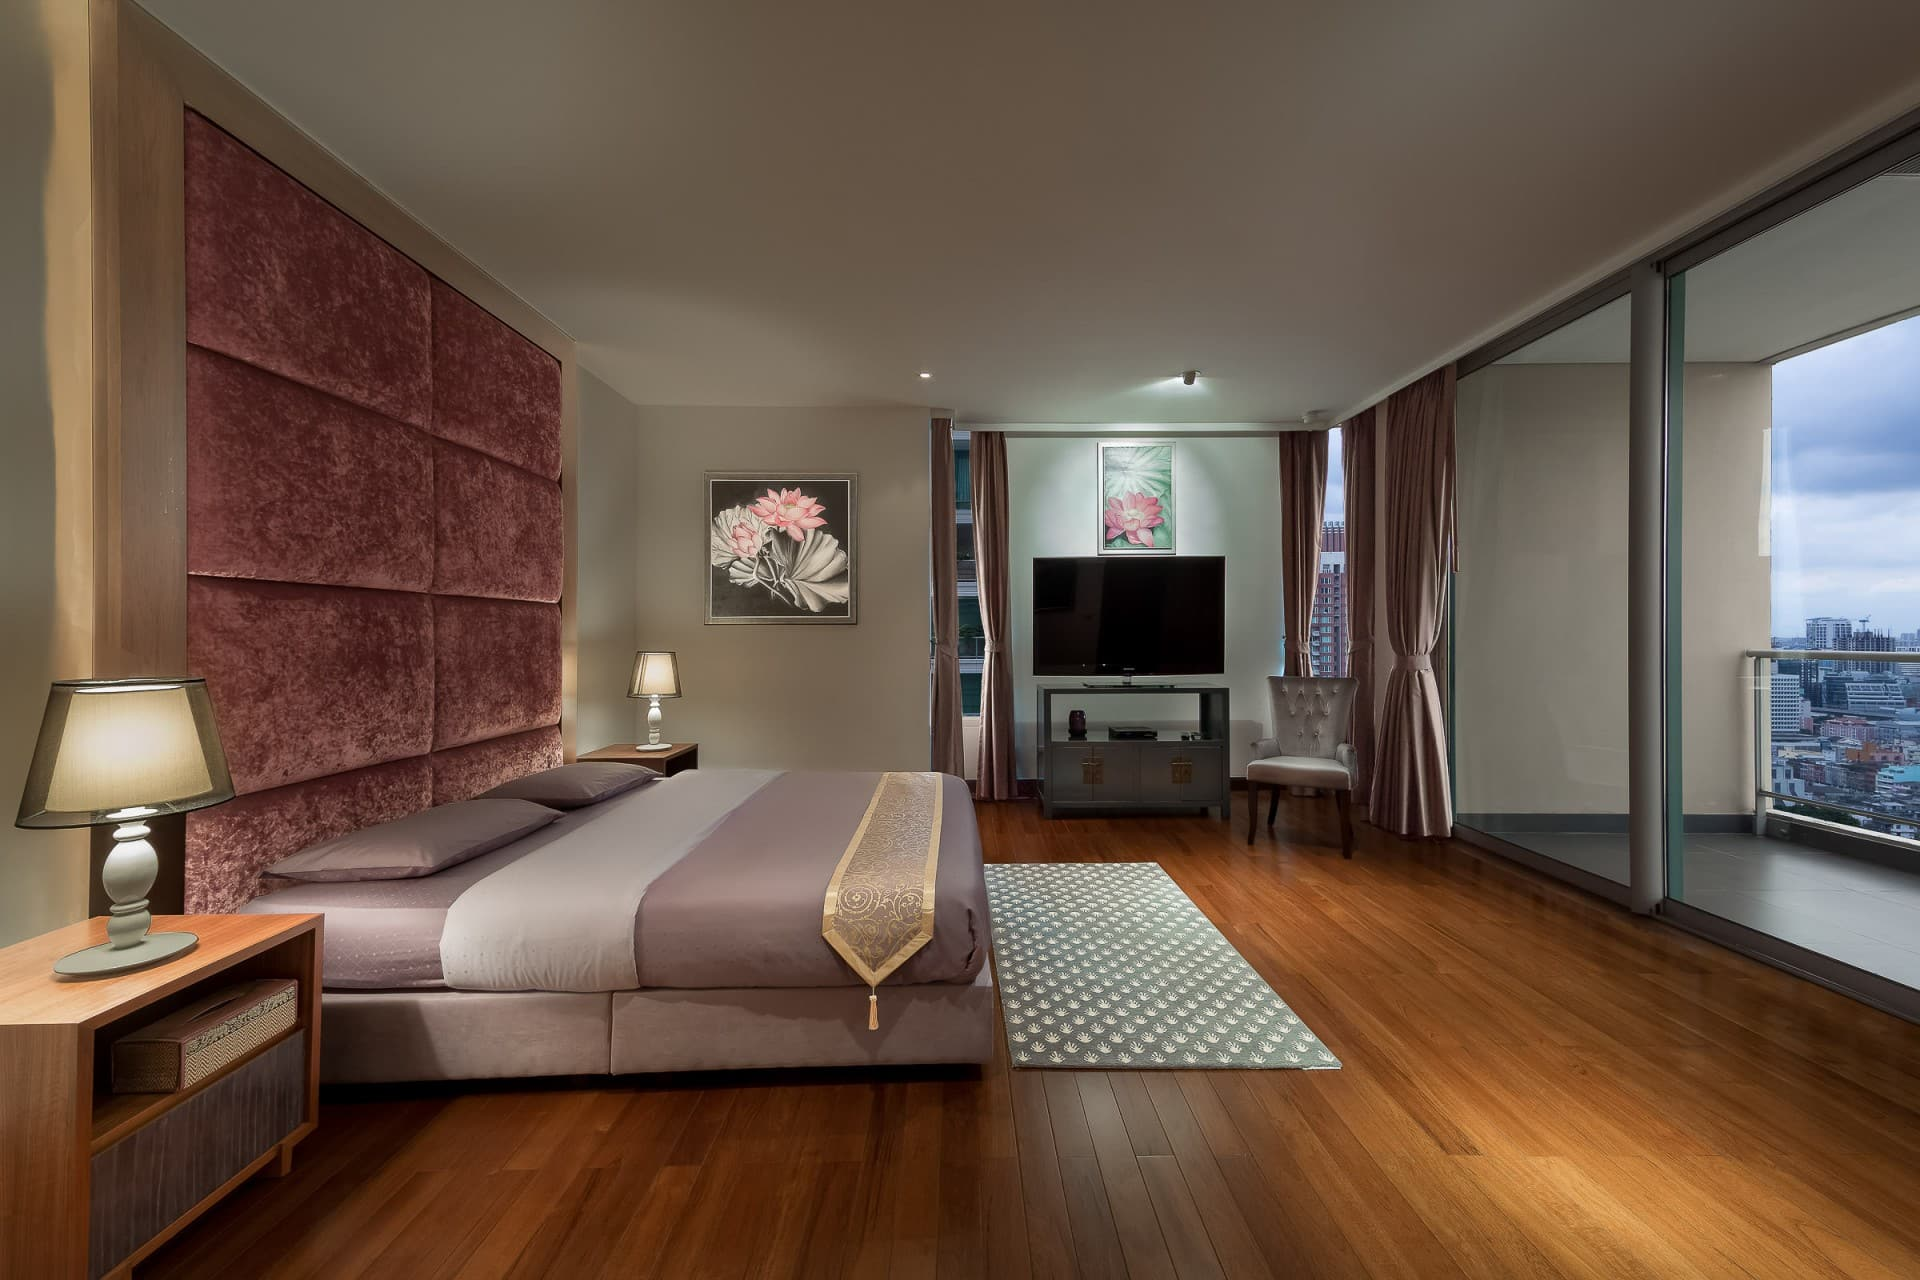 Best Architecture Photographer Bangkok   Luxury Condo Guest Bedroom Photography